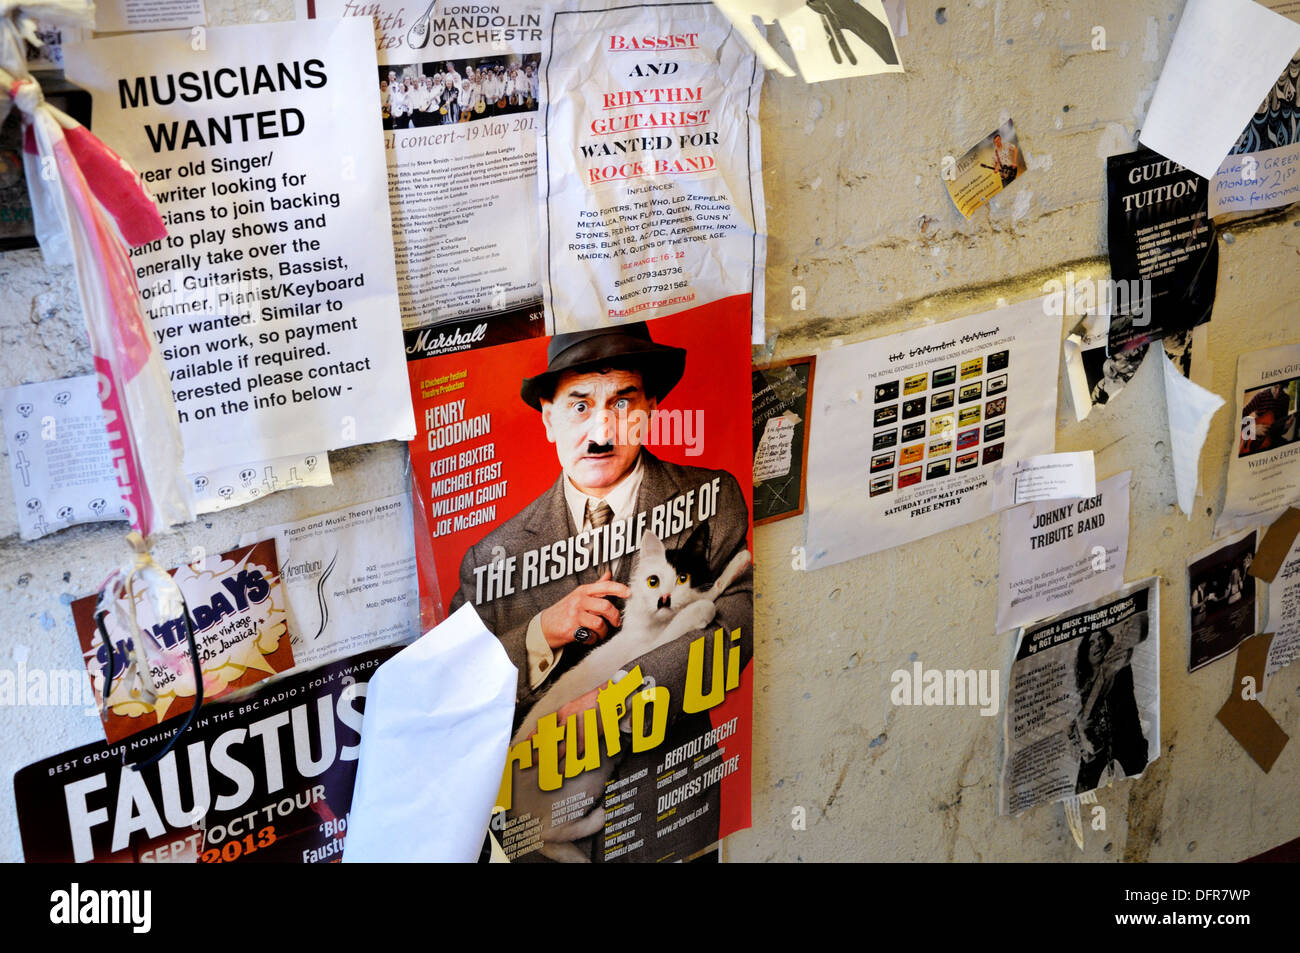 London, England, UK. Posters and adverts stuck to a wall (legible contact details changed or obscured) - Stock Image